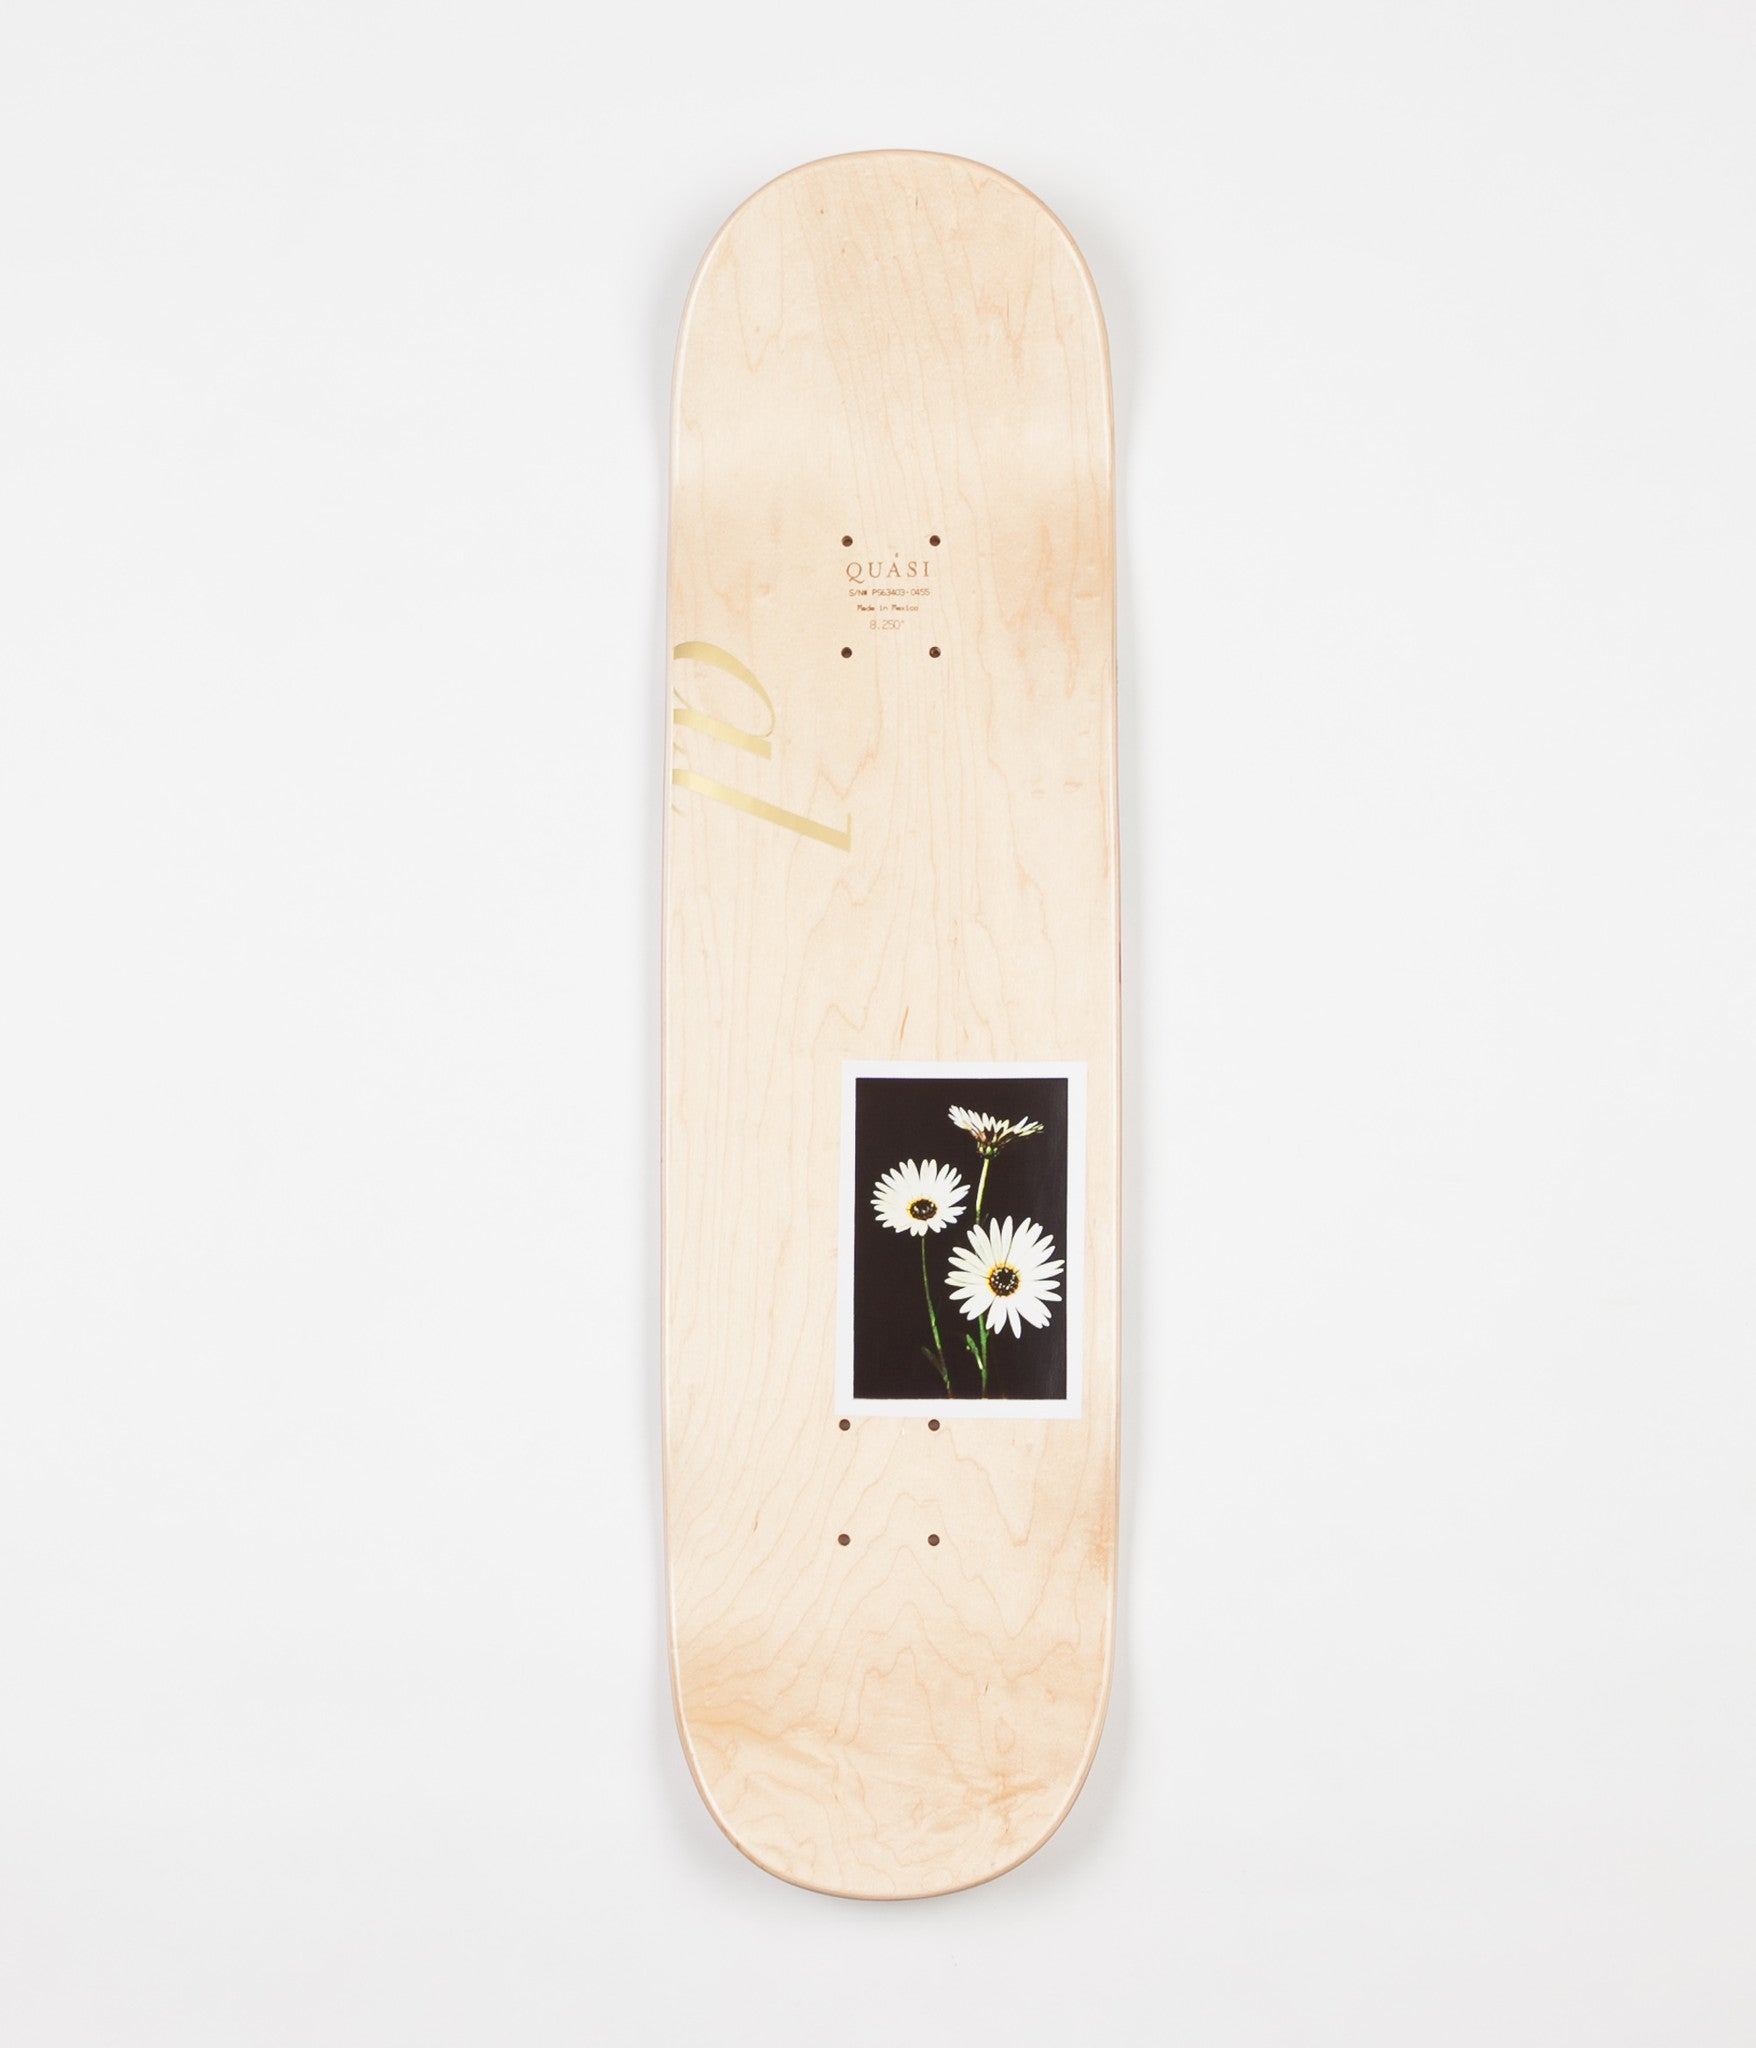 Quasi New Pro Mother Two Deck - Natural - 8.25""